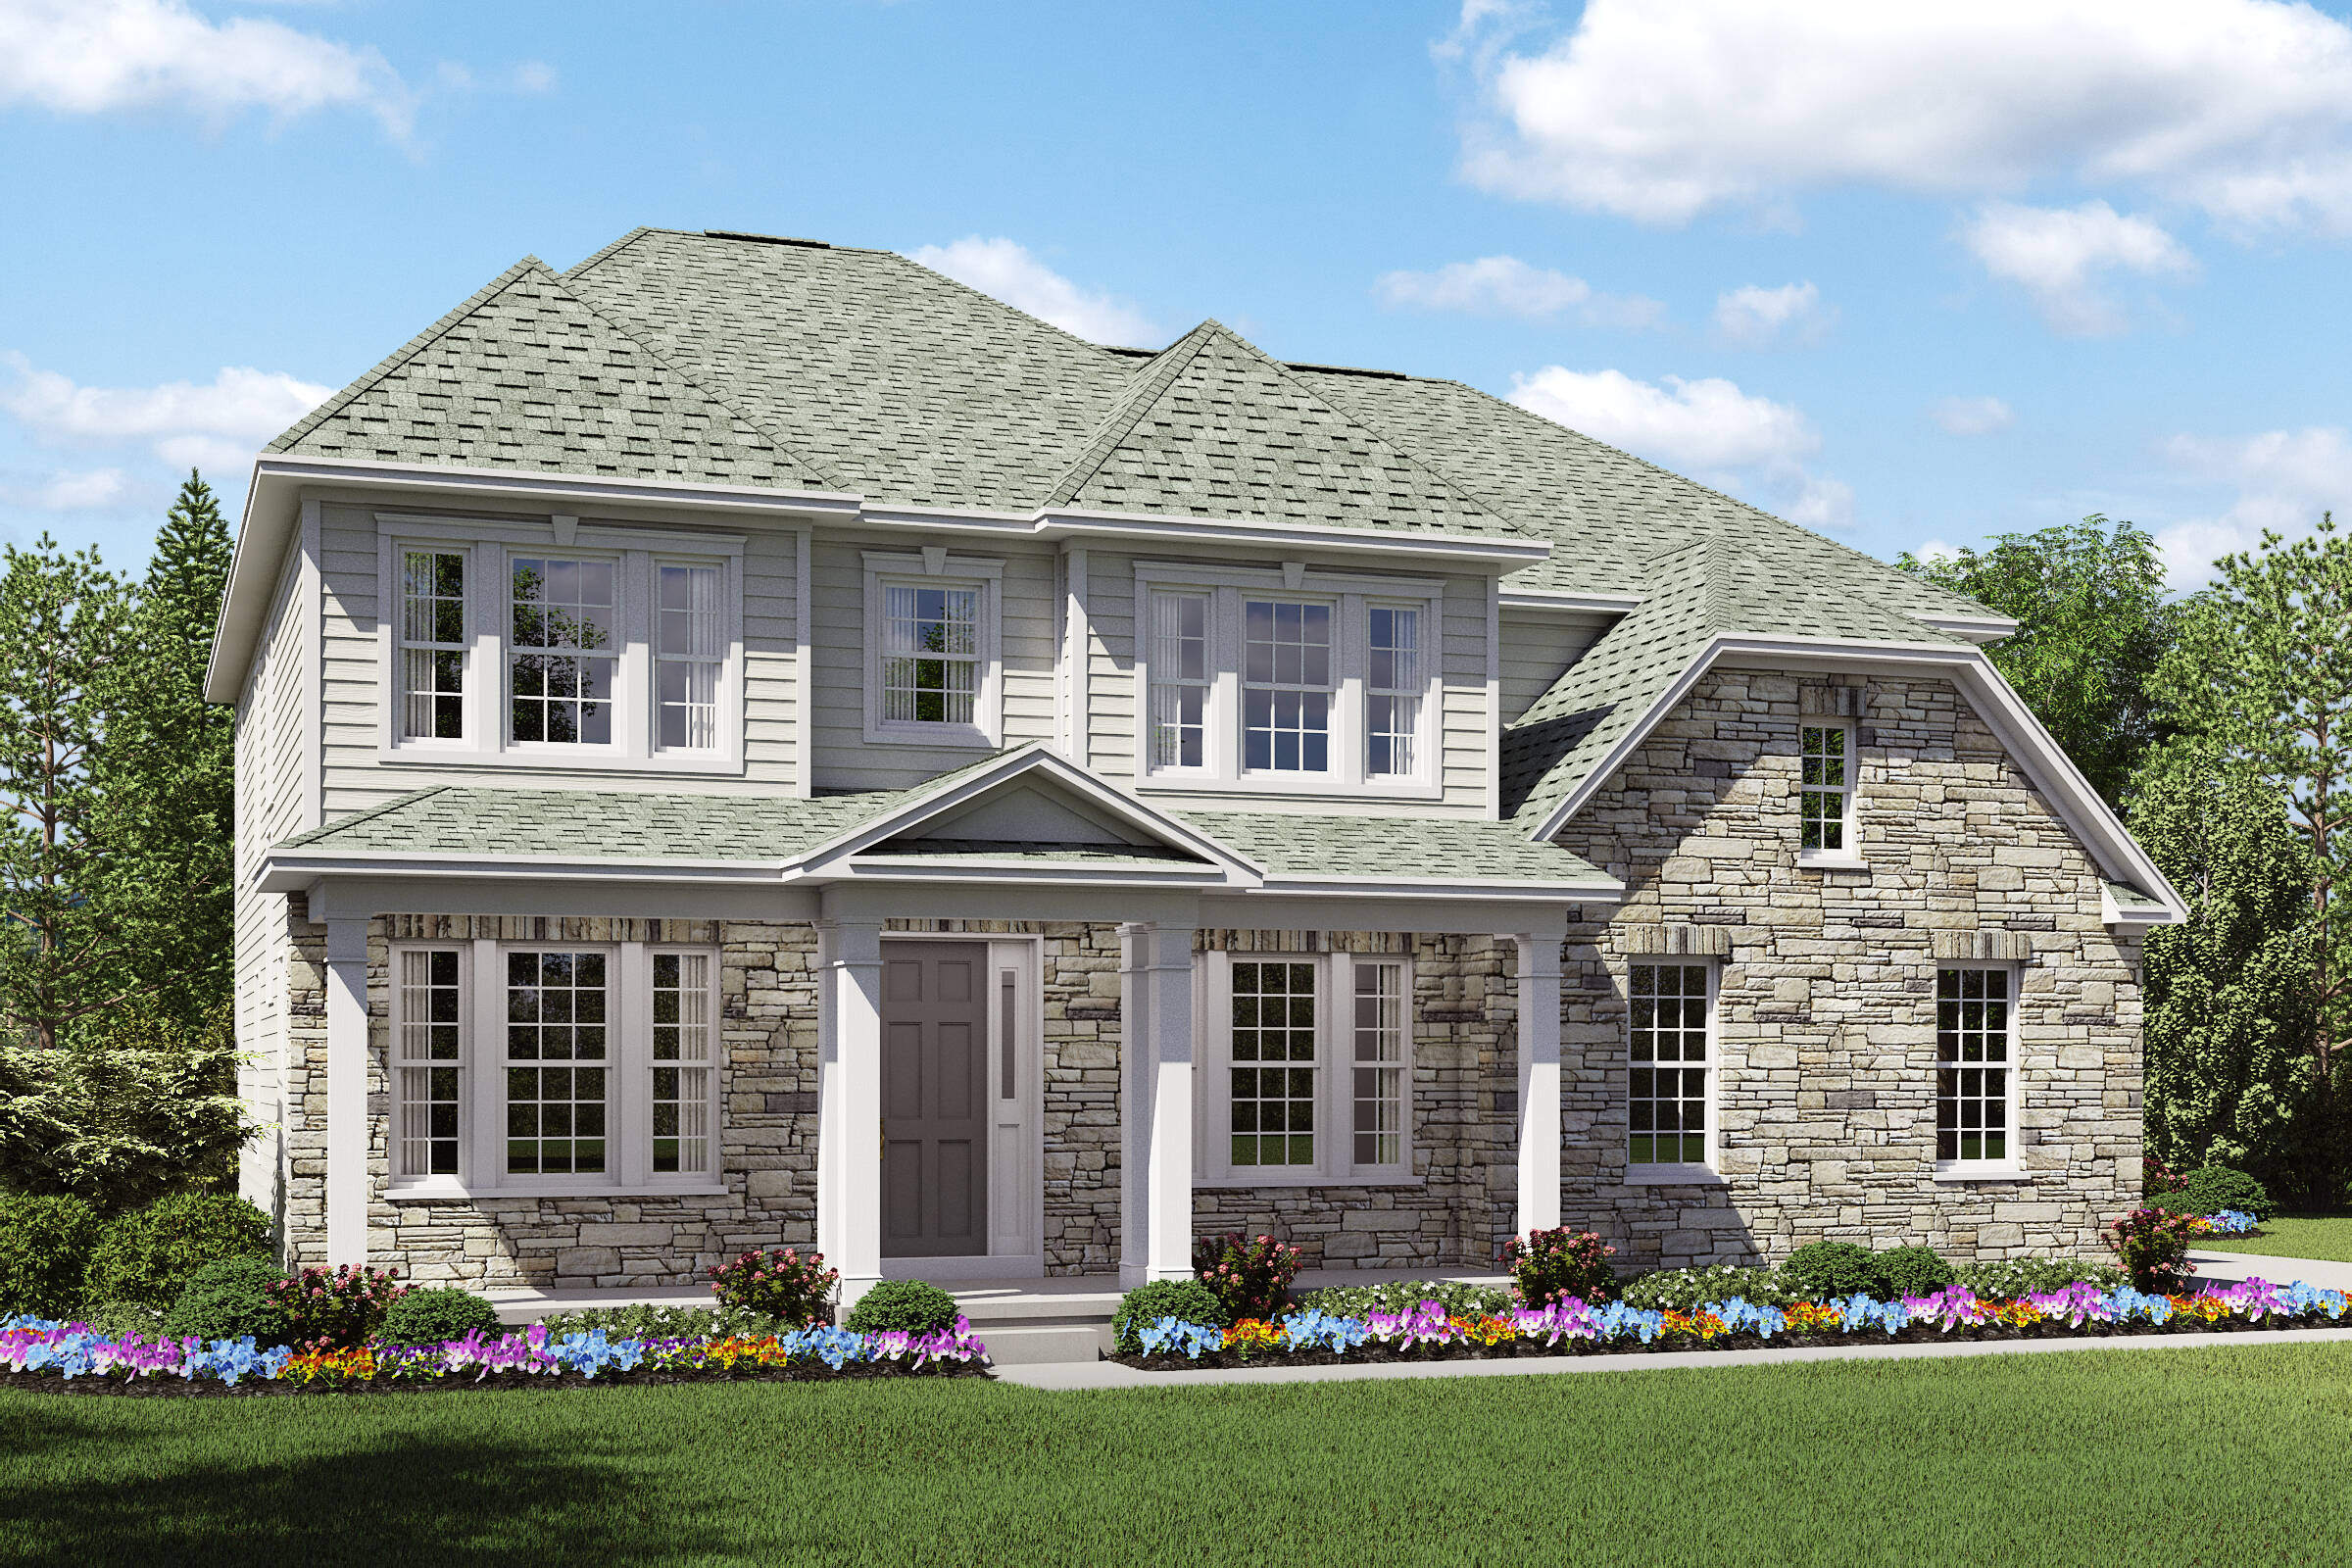 Beaumont JT SL new home designs cleveland